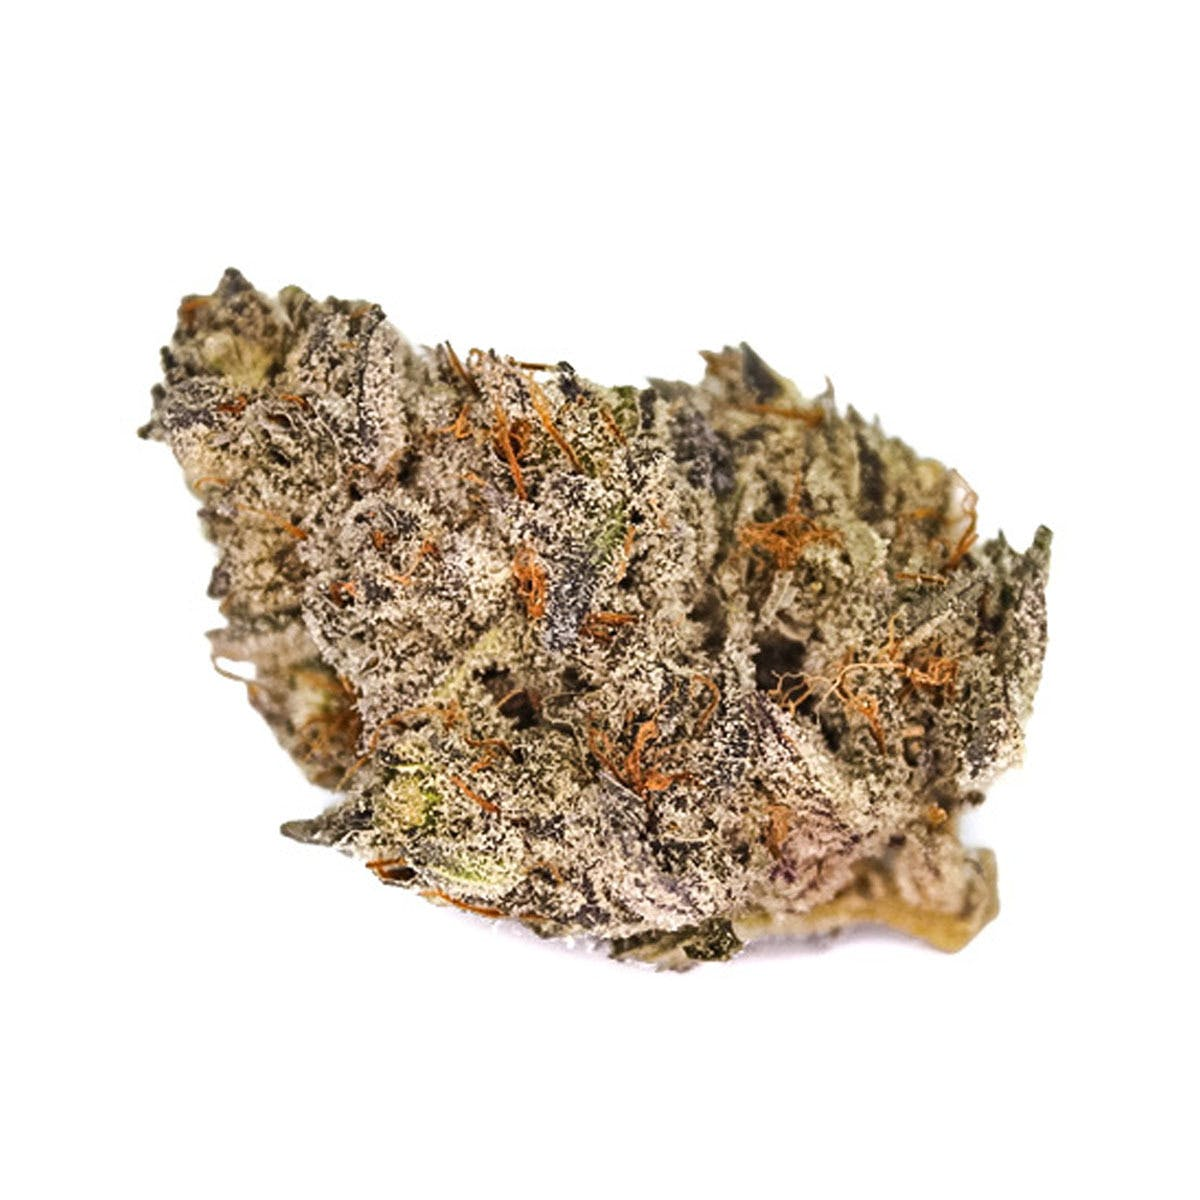 marijuana-dispensaries-verde-natural-boulder-recreational-in-boulder-citrus-berry